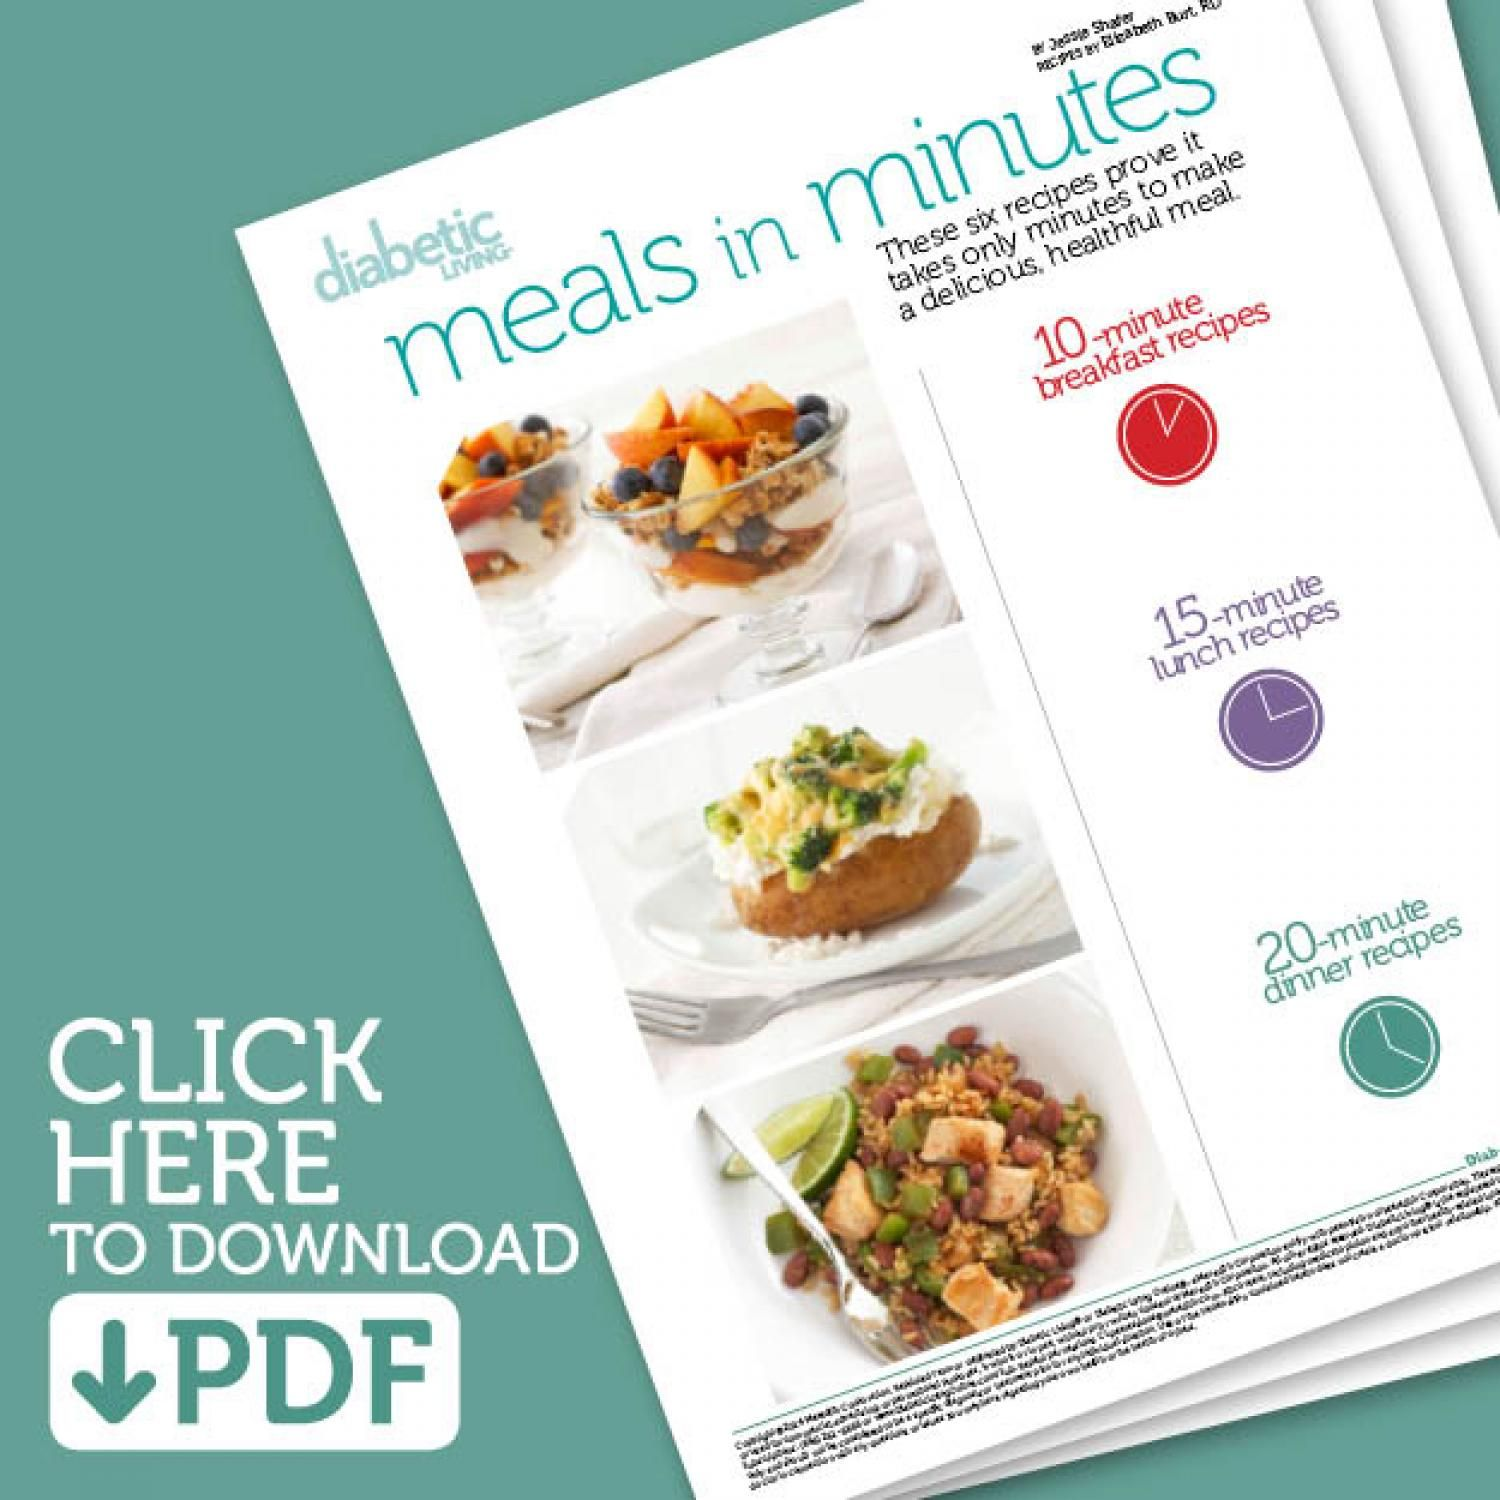 Healthy One Pot Meals 6 Easy Diabetic Dinner Recipes: Diabetic Meals In Minutes Mini Cookbook In 2019